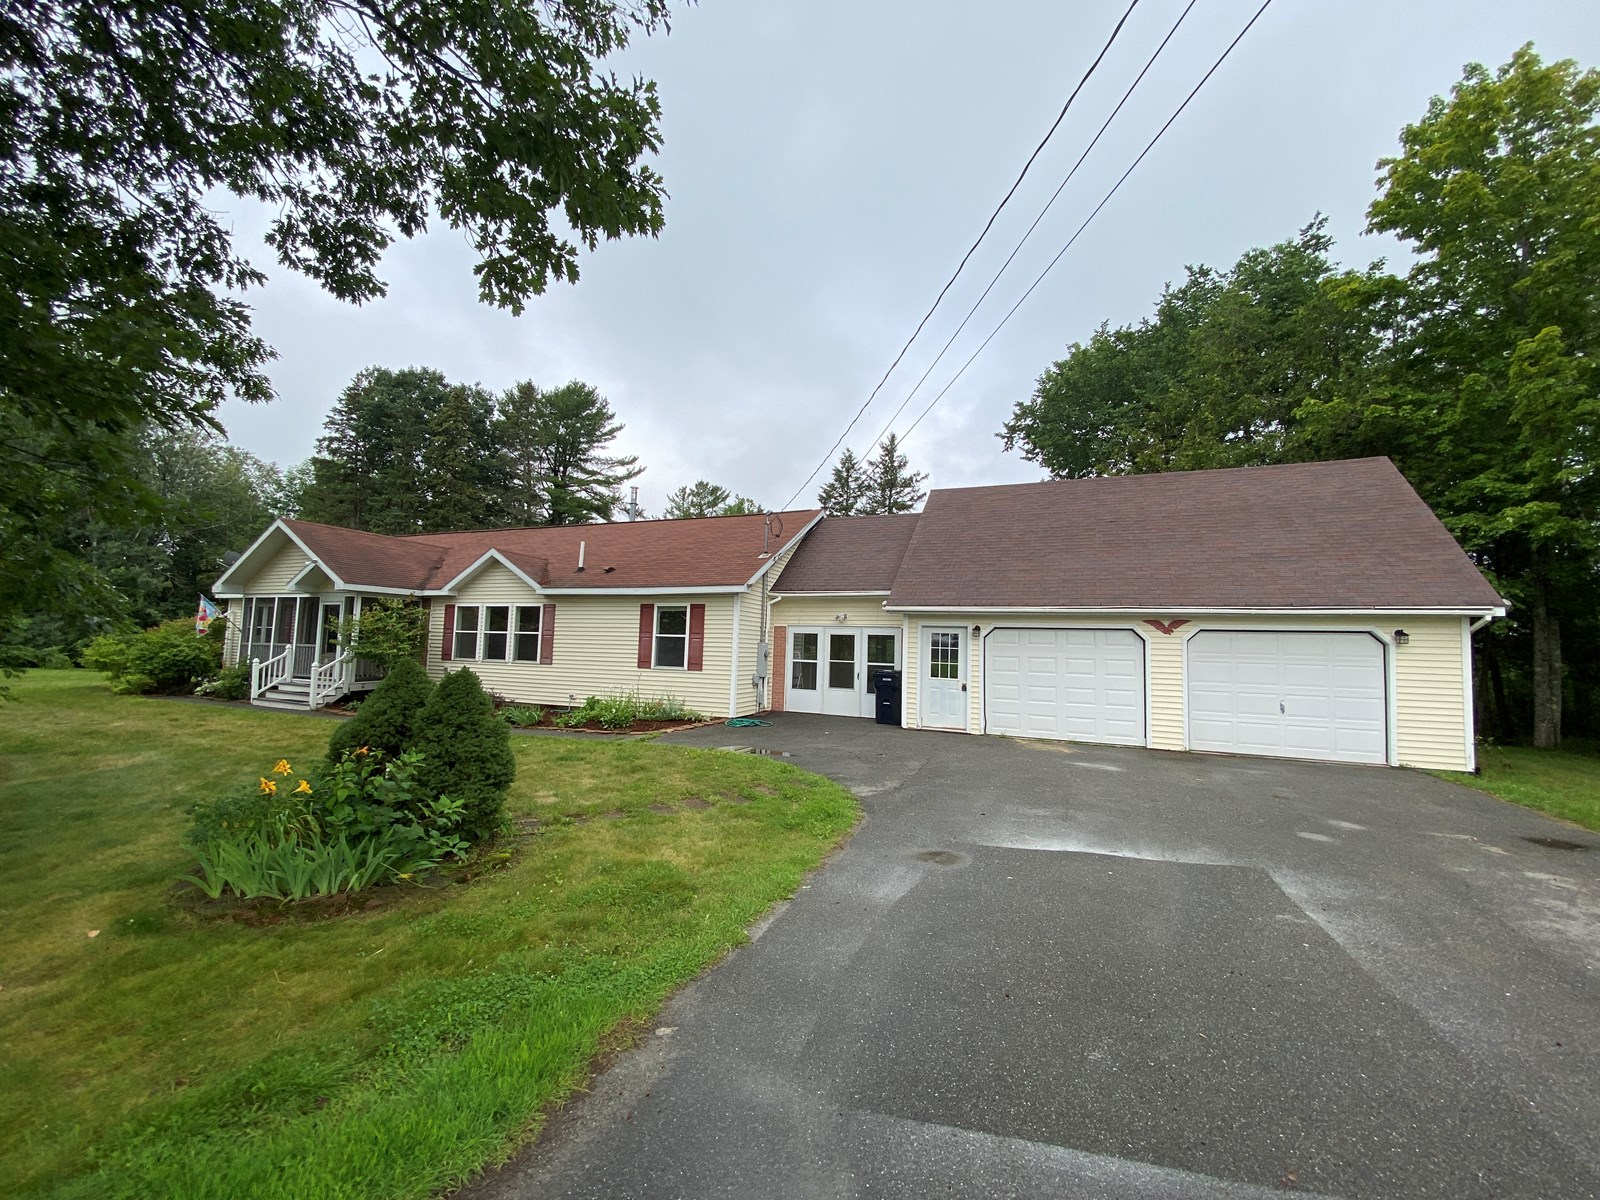 Private Ranch home in Bangor, Maine